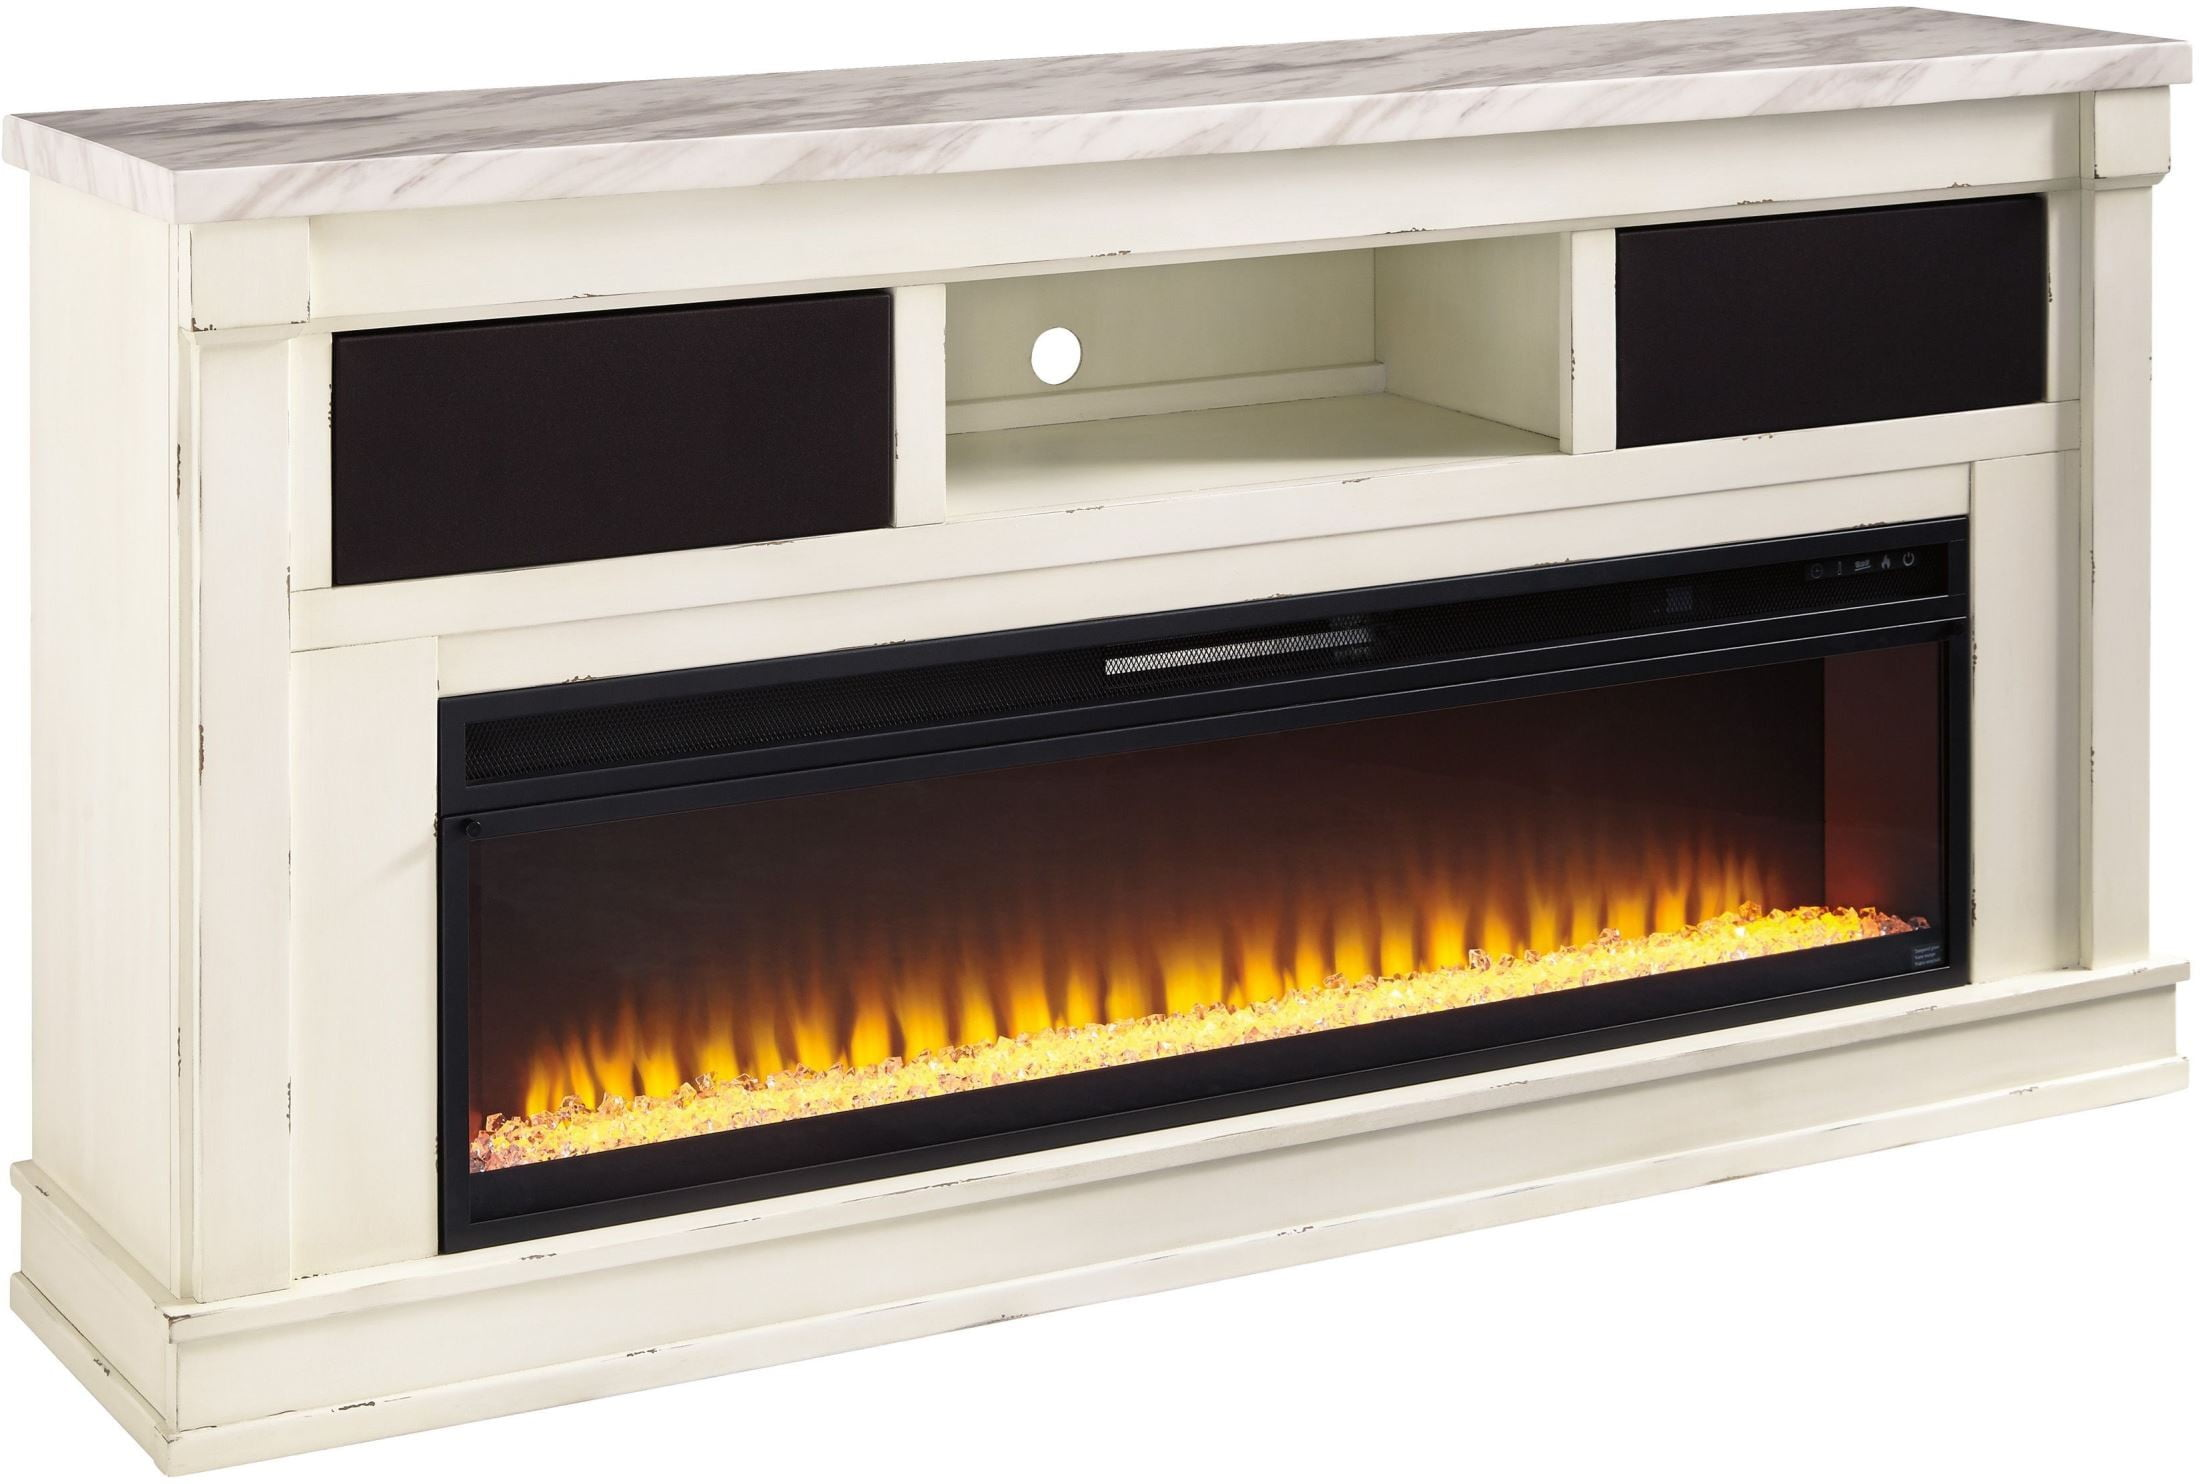 Becklyn Chipped White Xl Tv Stand With Wide Fireplace Insert From